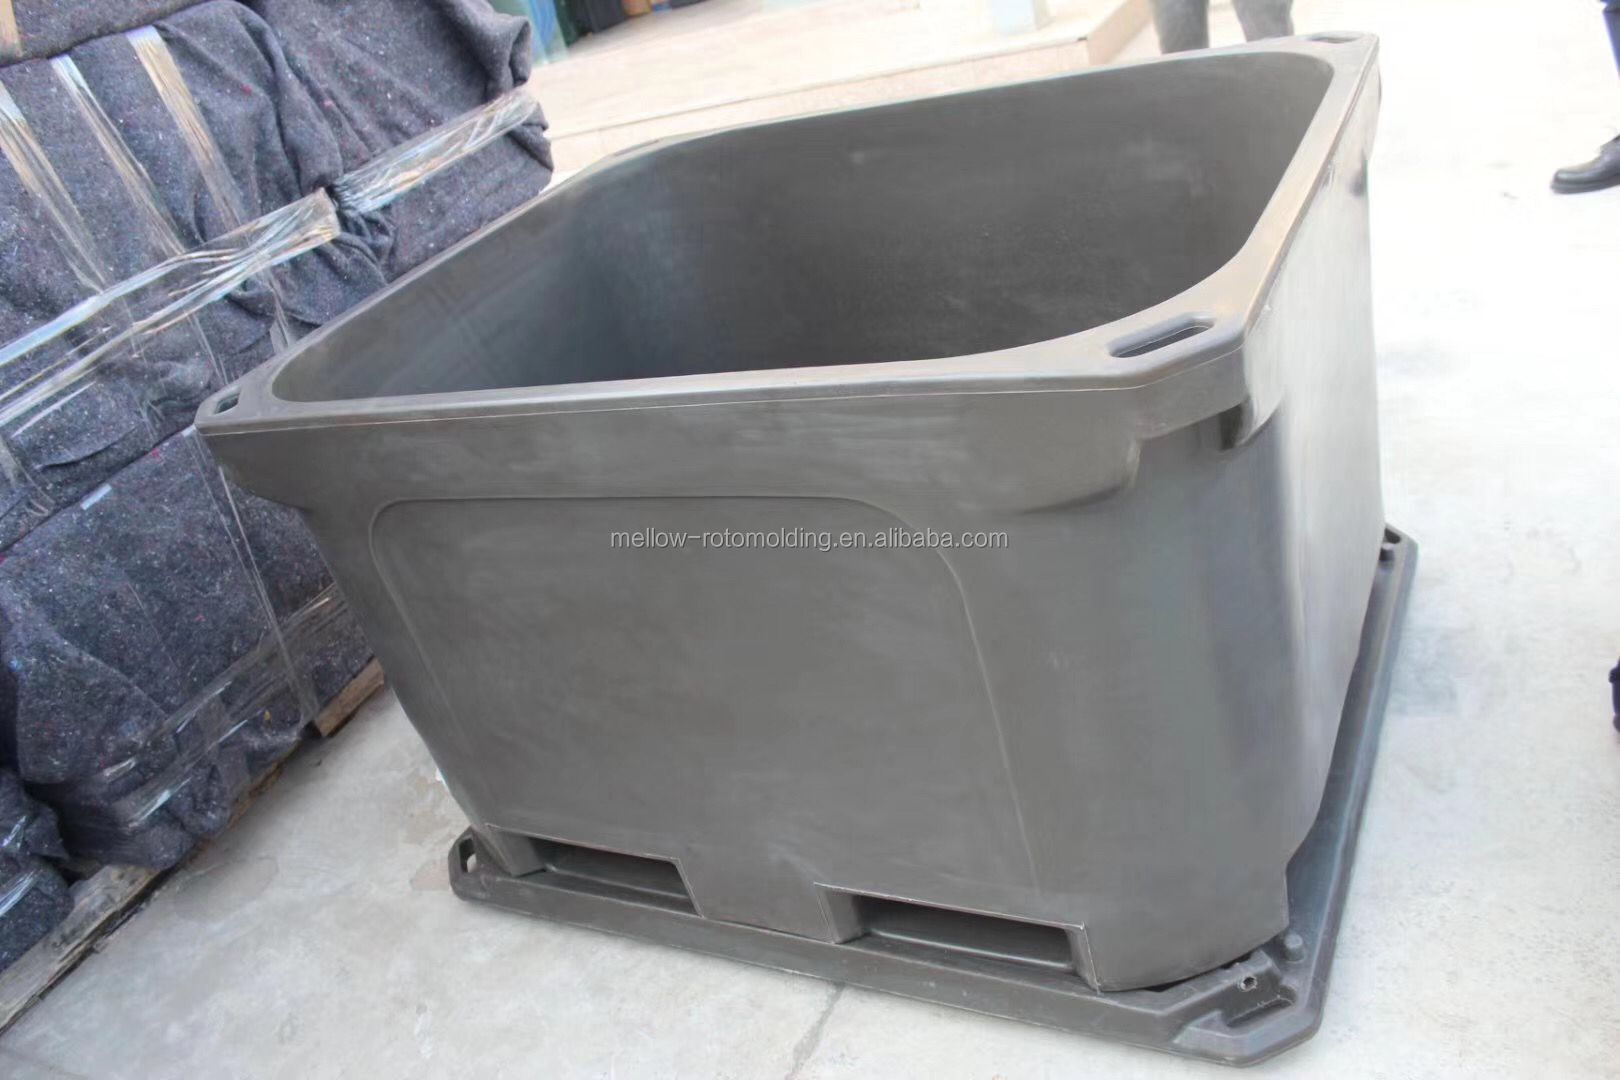 Customized forklift carrying large fish crisper cooler box